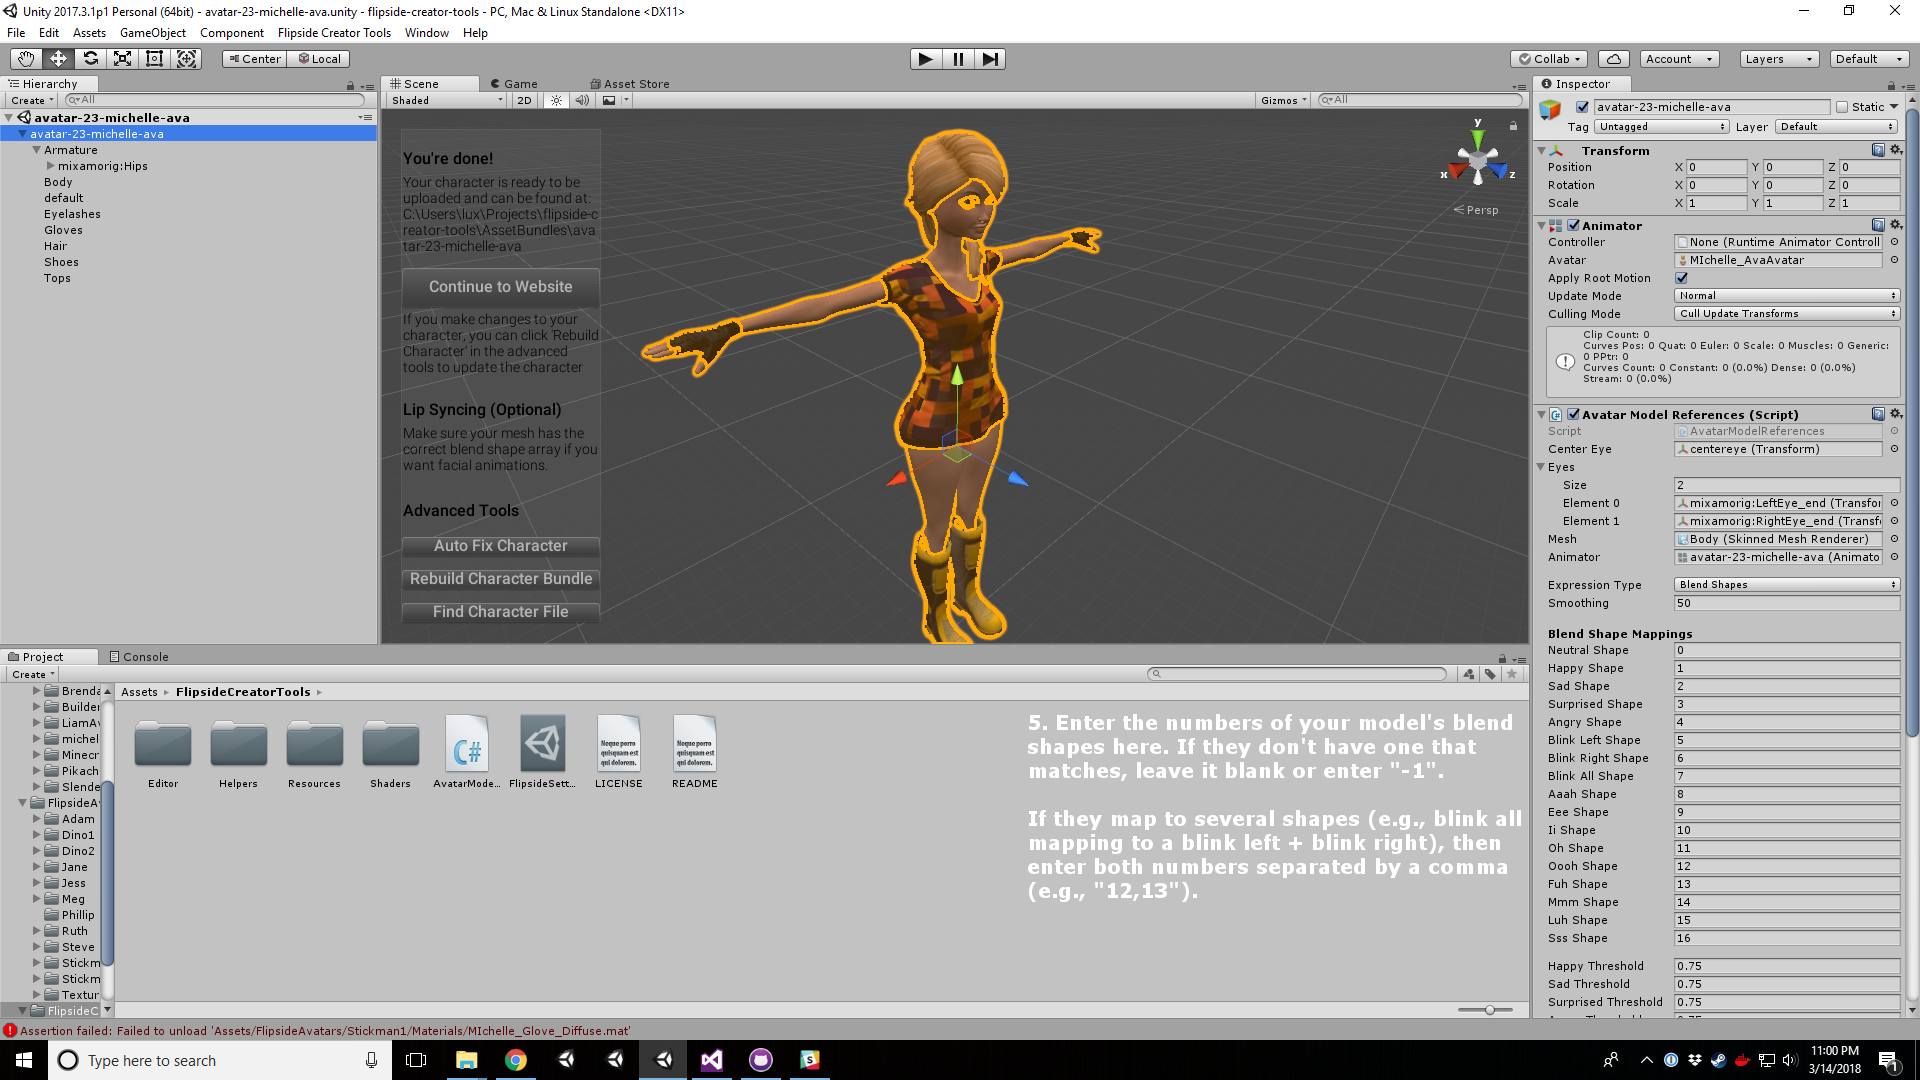 Blend shape mapping - step 3